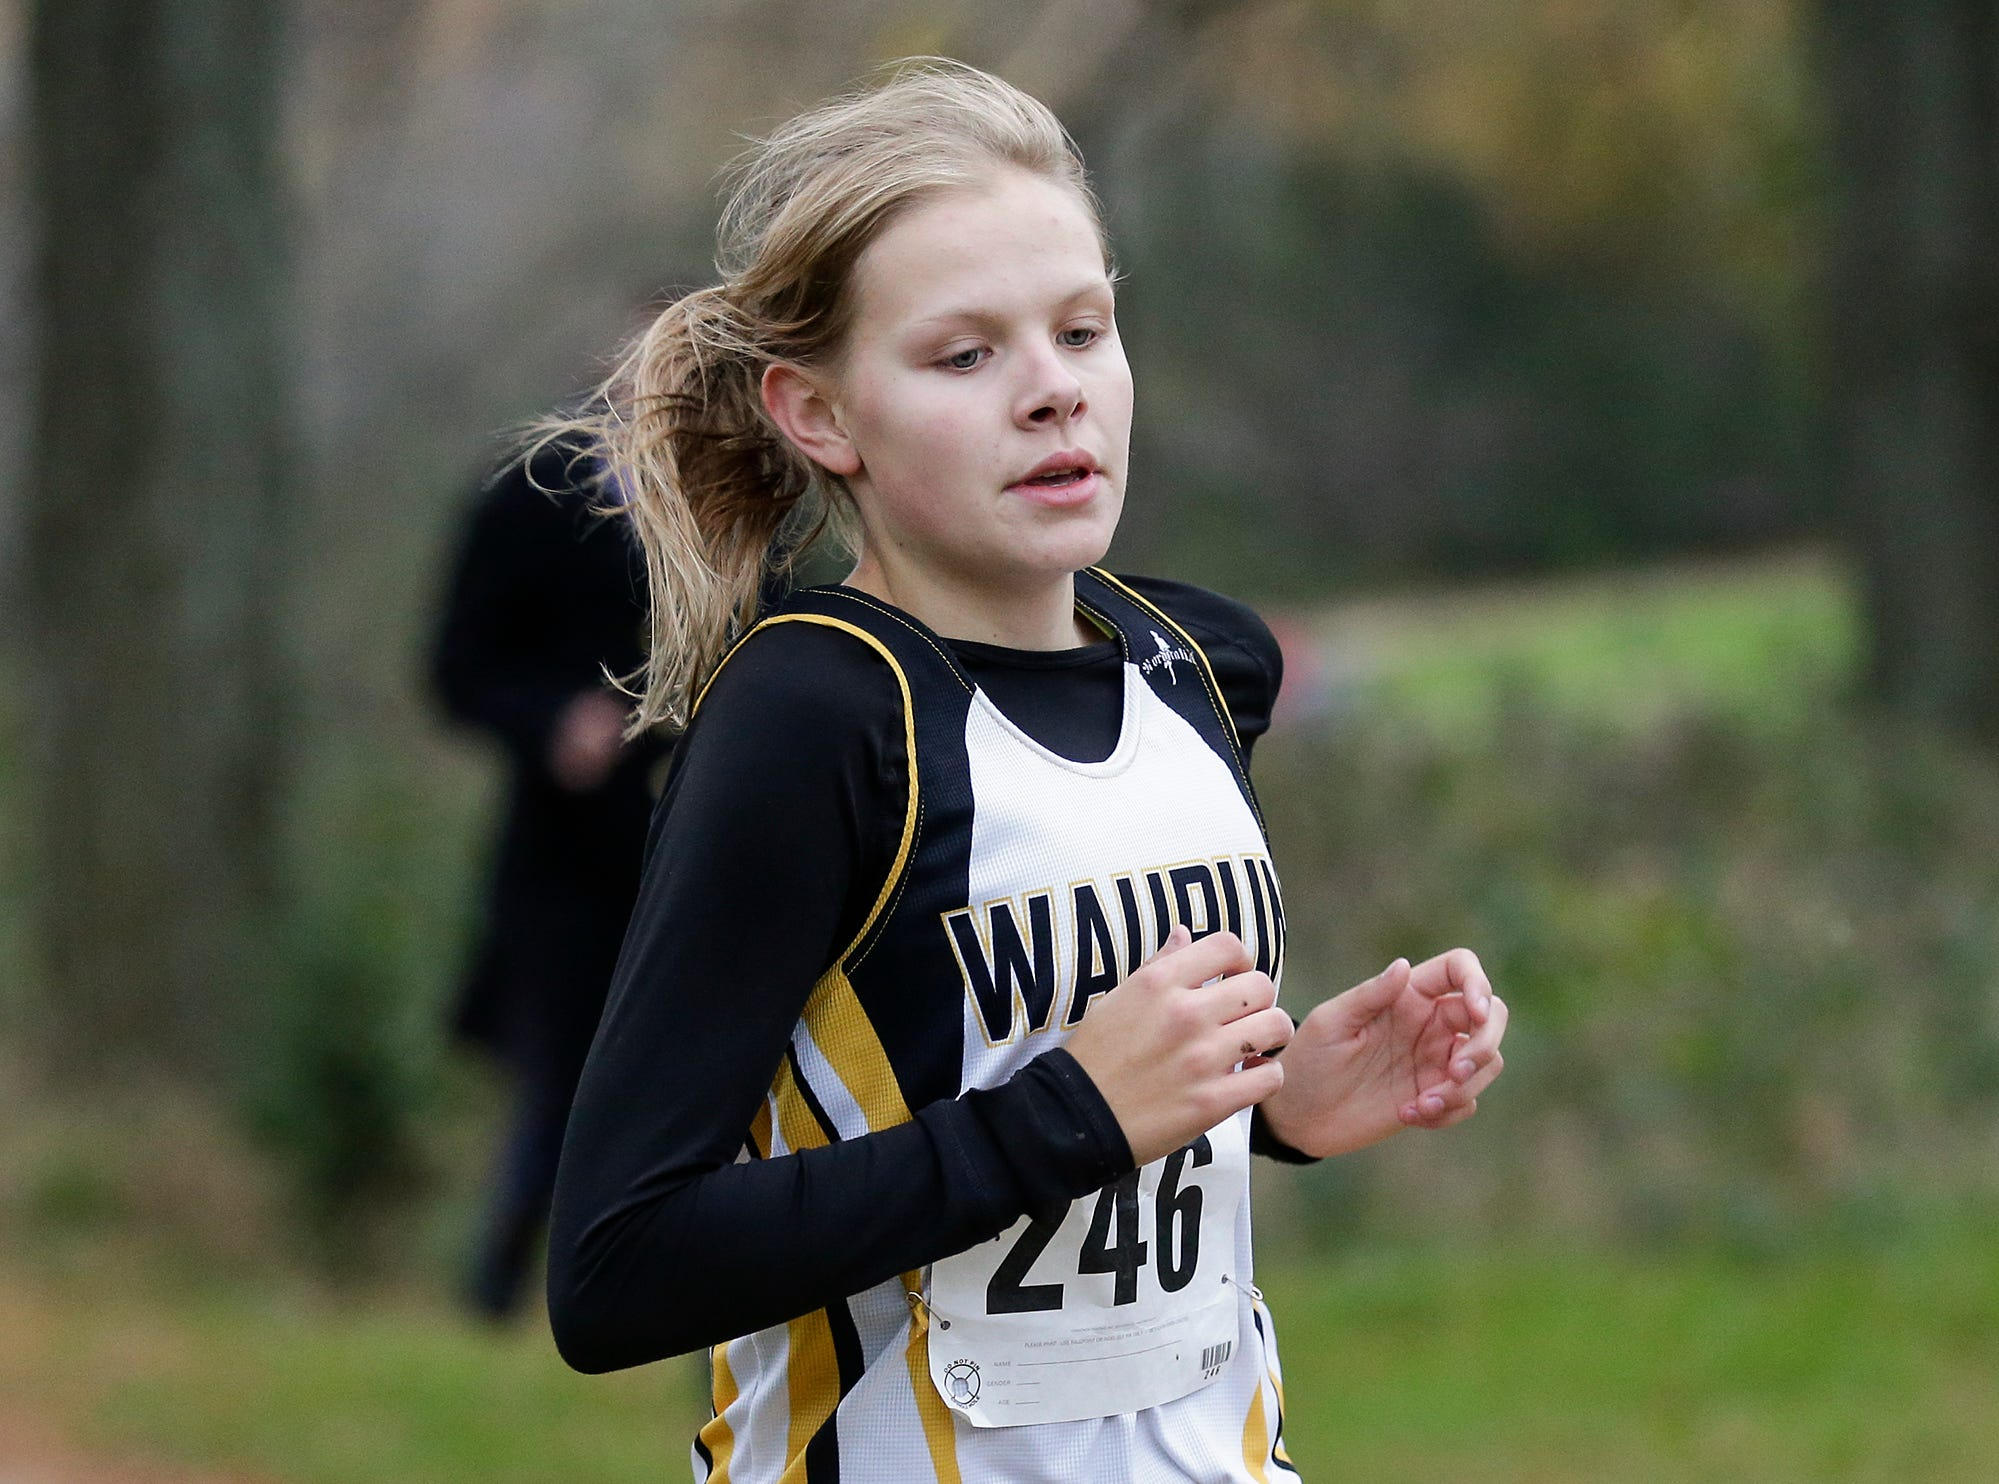 Waupun High School's Emily Manske runs in the WIAA Division two Mayville sectional cross country meet at the Mayville golf course Friday, October 19, 2018. Doug Raflik/USA TODAY NETWORK-Wisconsin